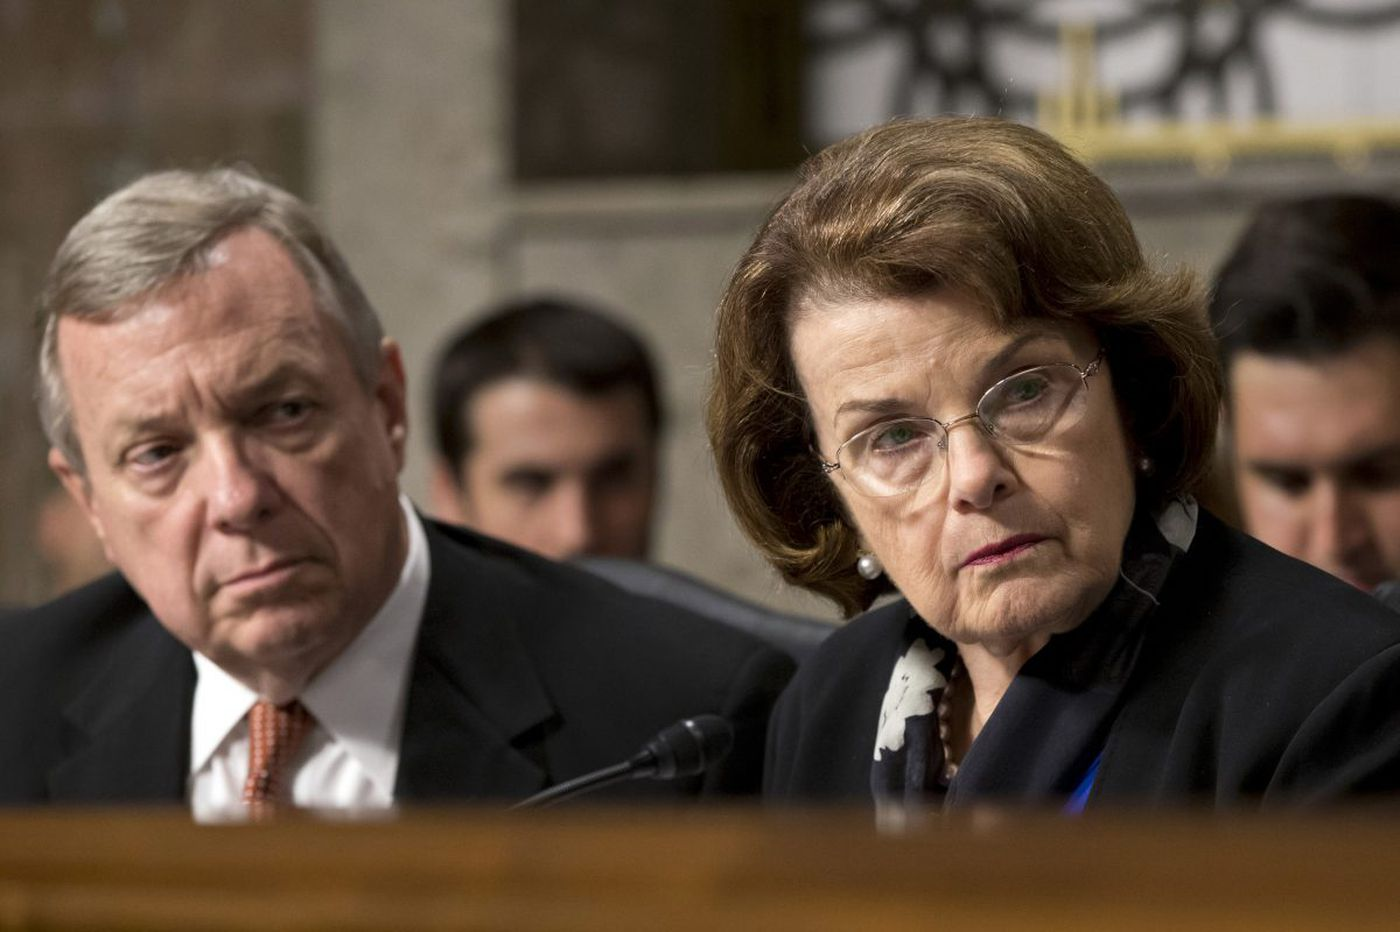 Questioning of judicial nominee's Catholicism by Feinstein and Durbin would make the Klan proud